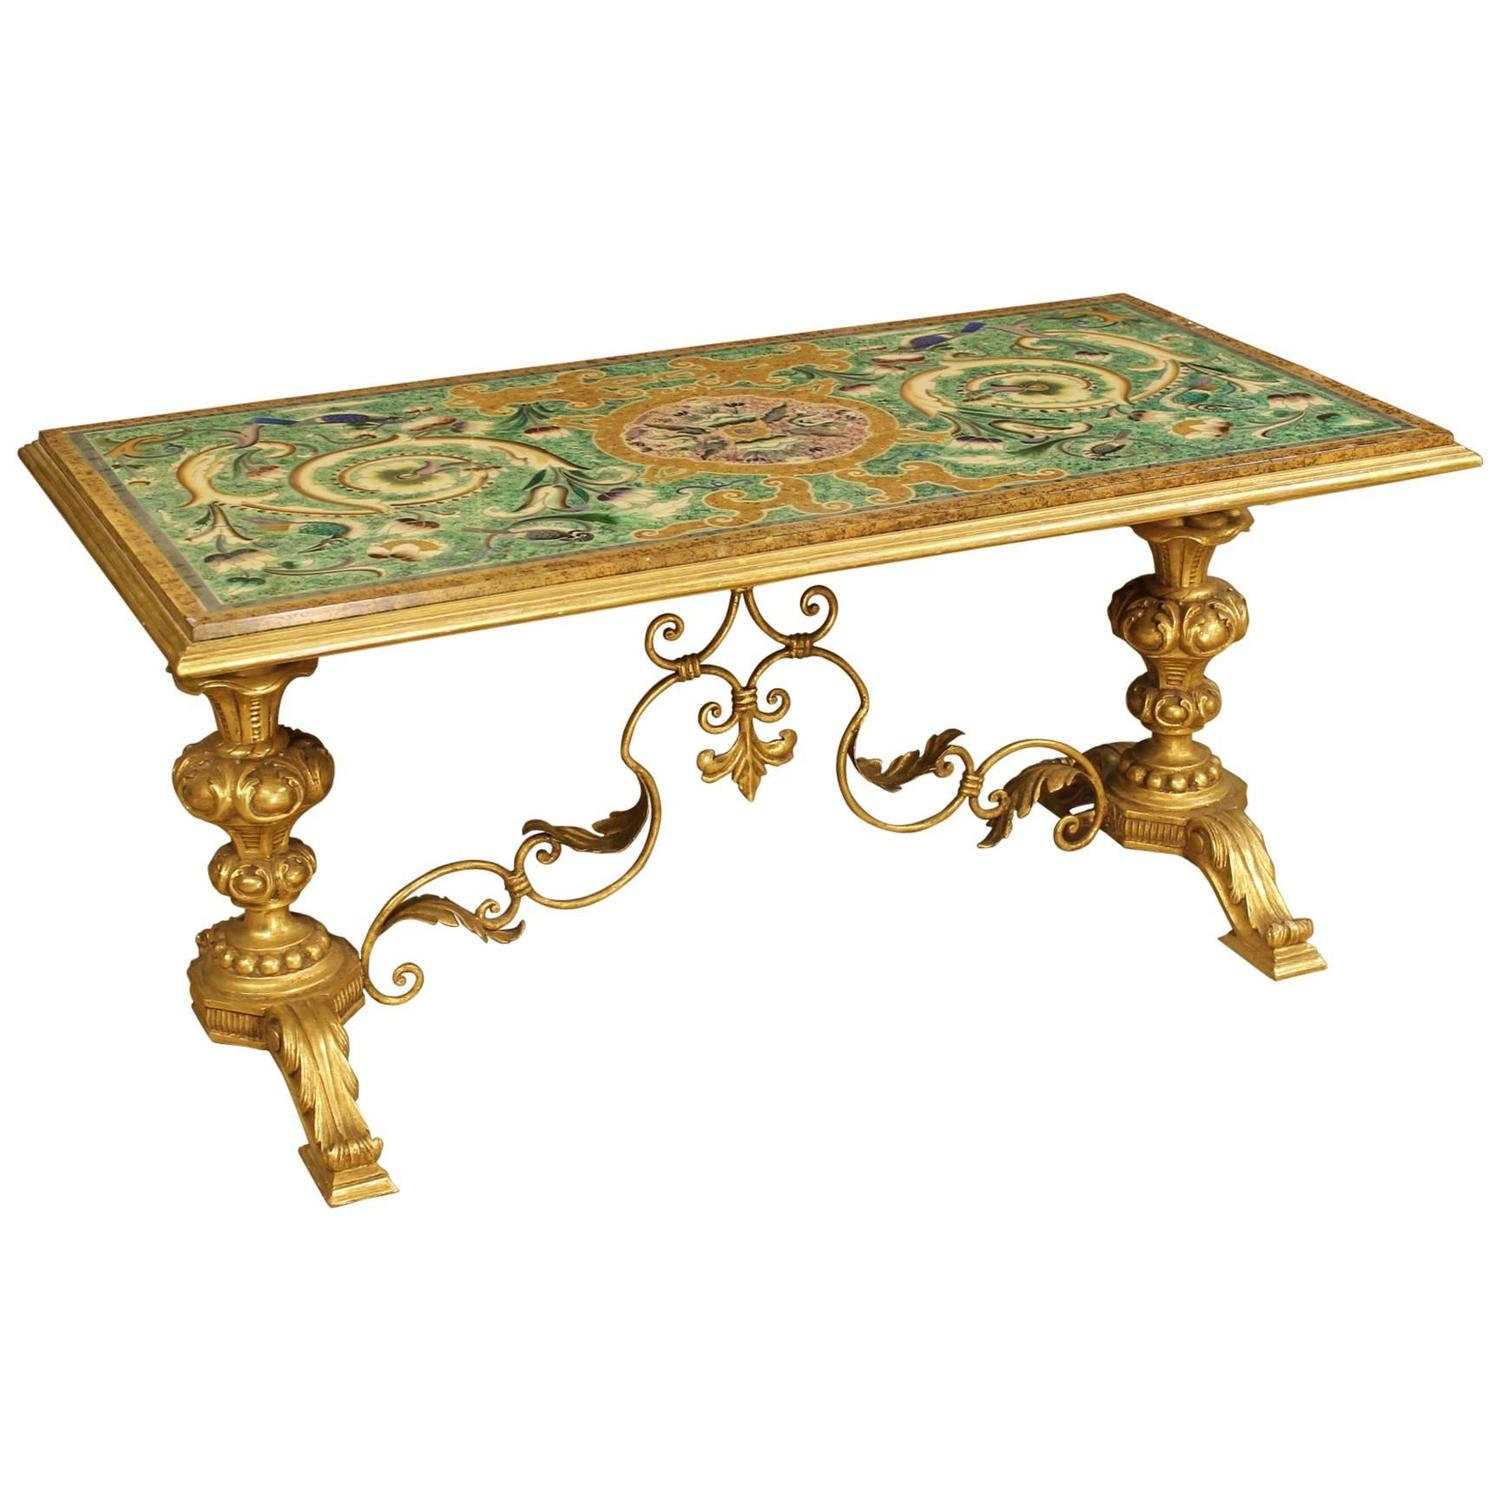 Marvelous photograph of 20th Century Golden Wood and Metal Coffee Table at 1stdibs with #704718 color and 1500x1500 pixels